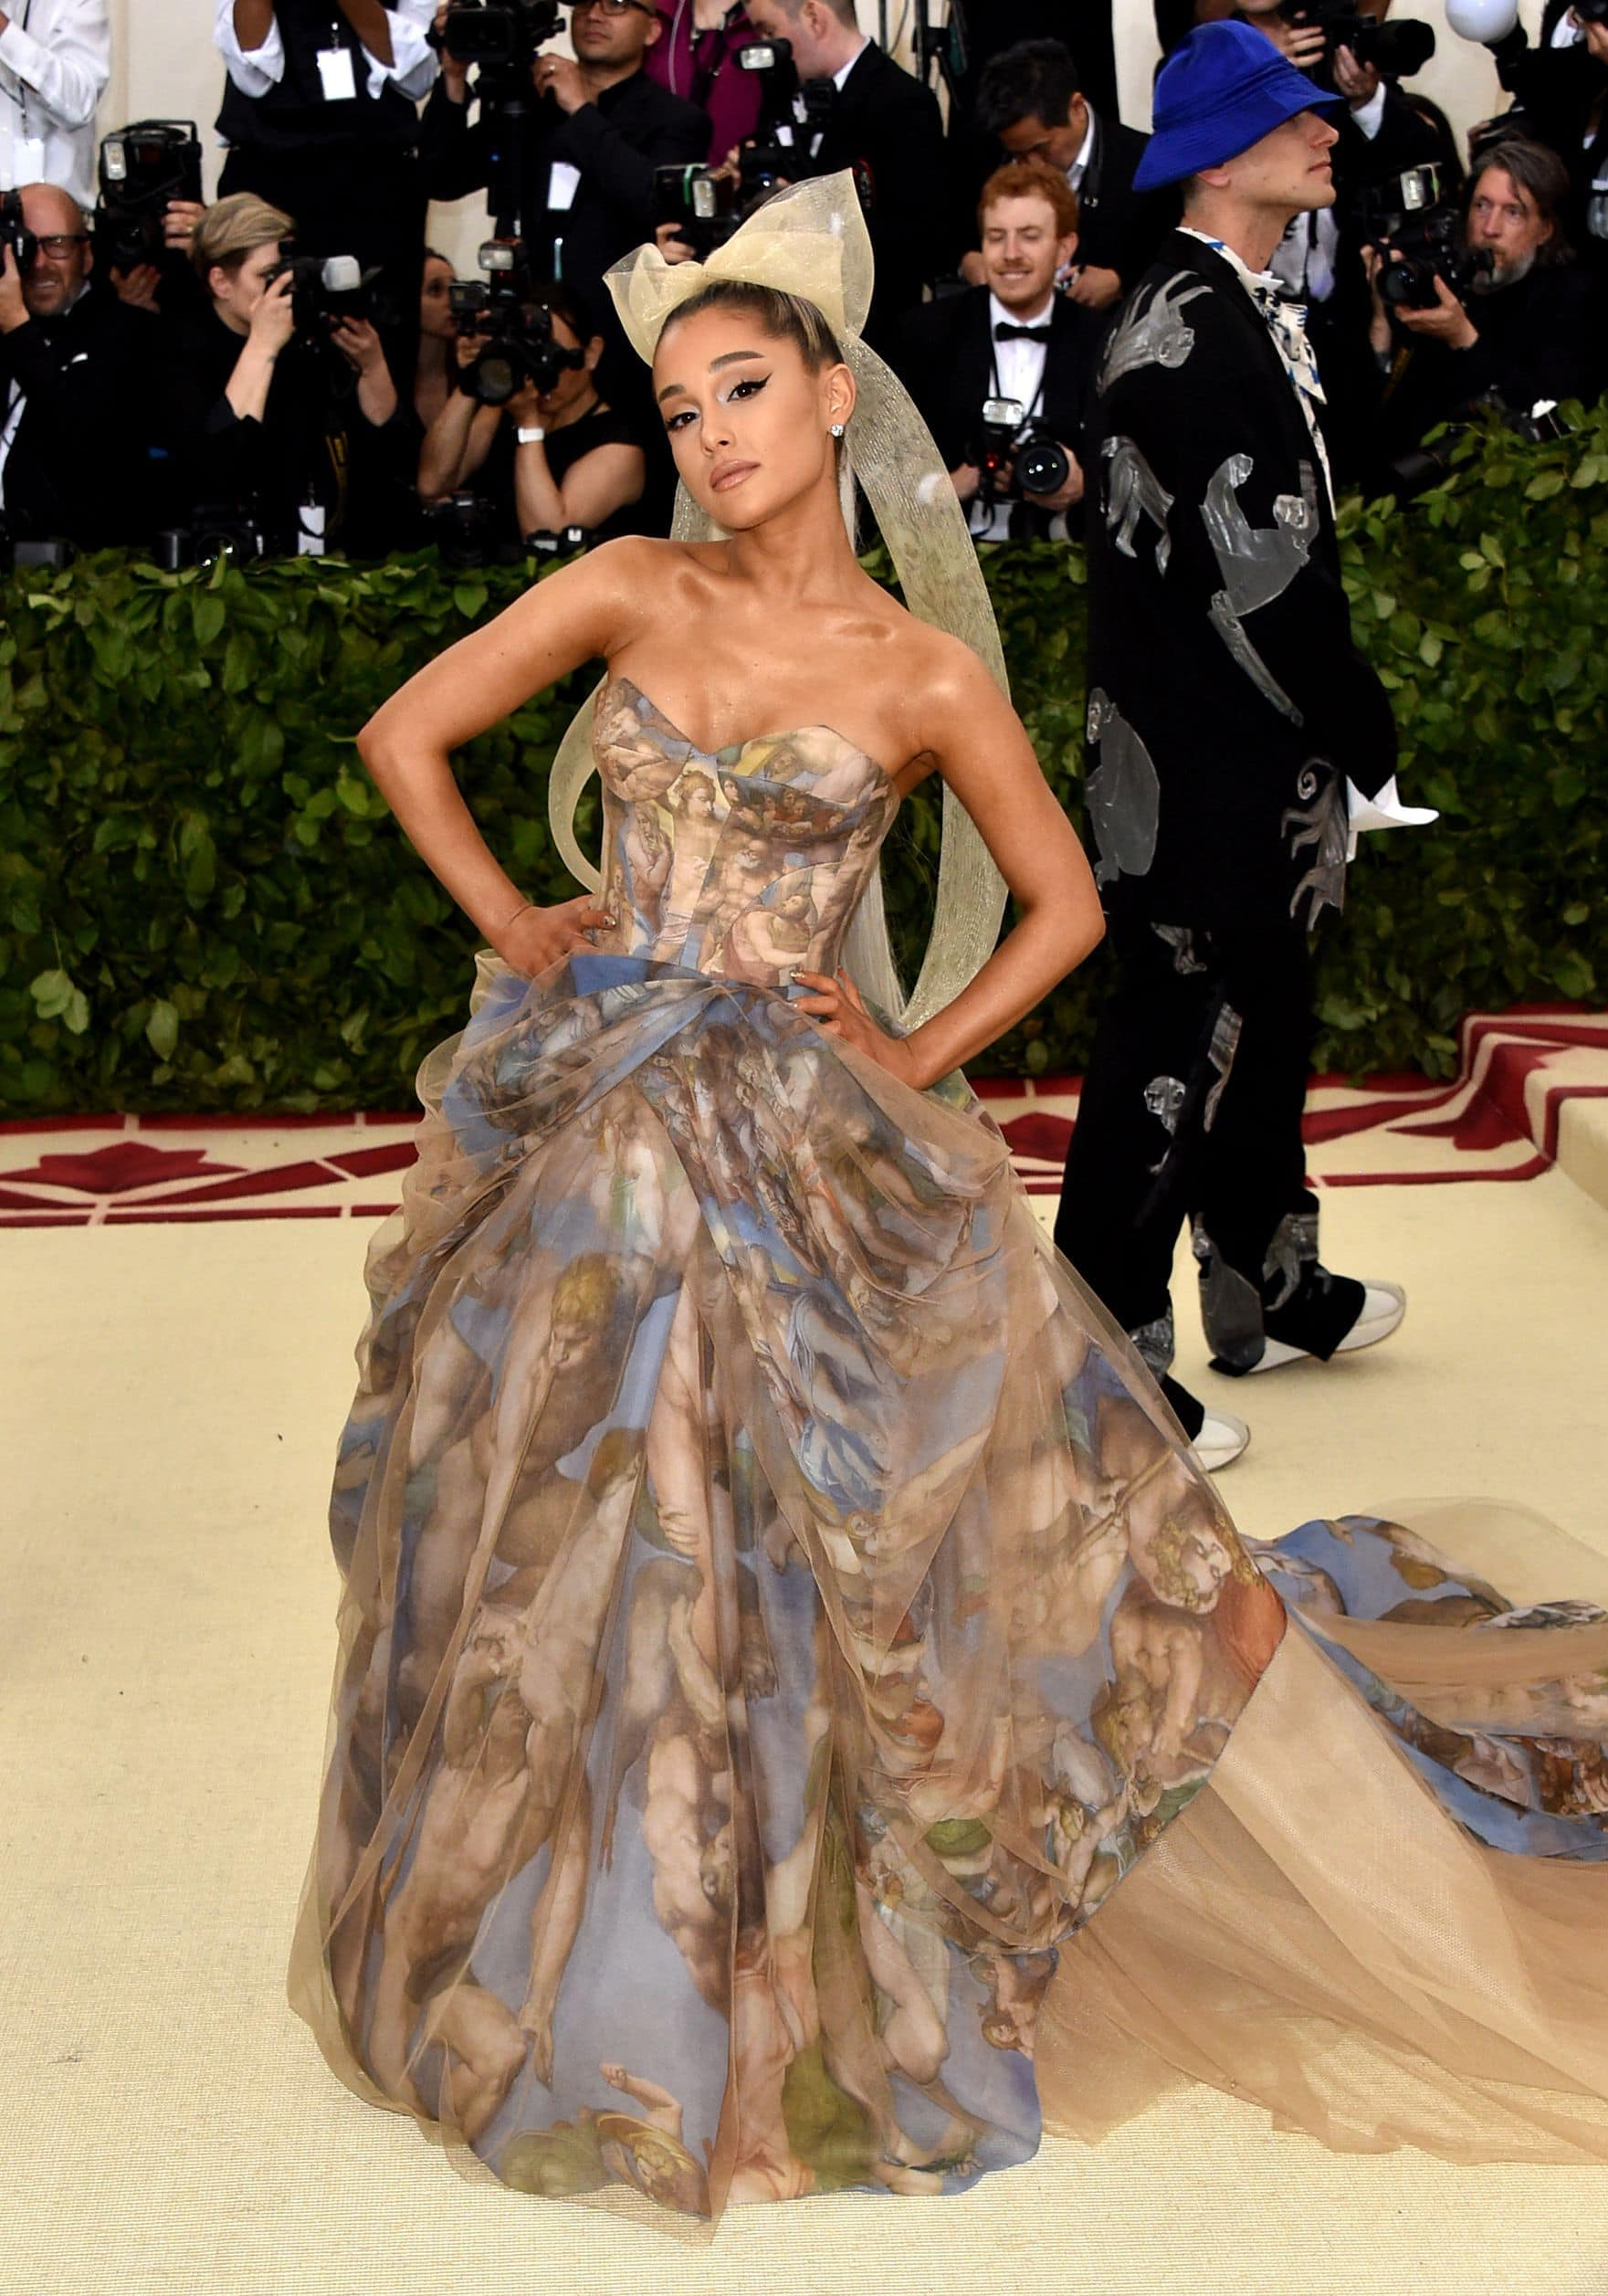 Fashion, Fashionblog, Fashion Magazine, Editorial, Style, Style Guide, Style Inspiration, Met Gala, New York, Fashion, Fashion World, Fashion Event, Glamour, Red Carpet, Celebrities, Gowns, Trends, Dresses, Princess Mood, Metallic, Silhouettes, Met Gala 2018, Metallic, Silver